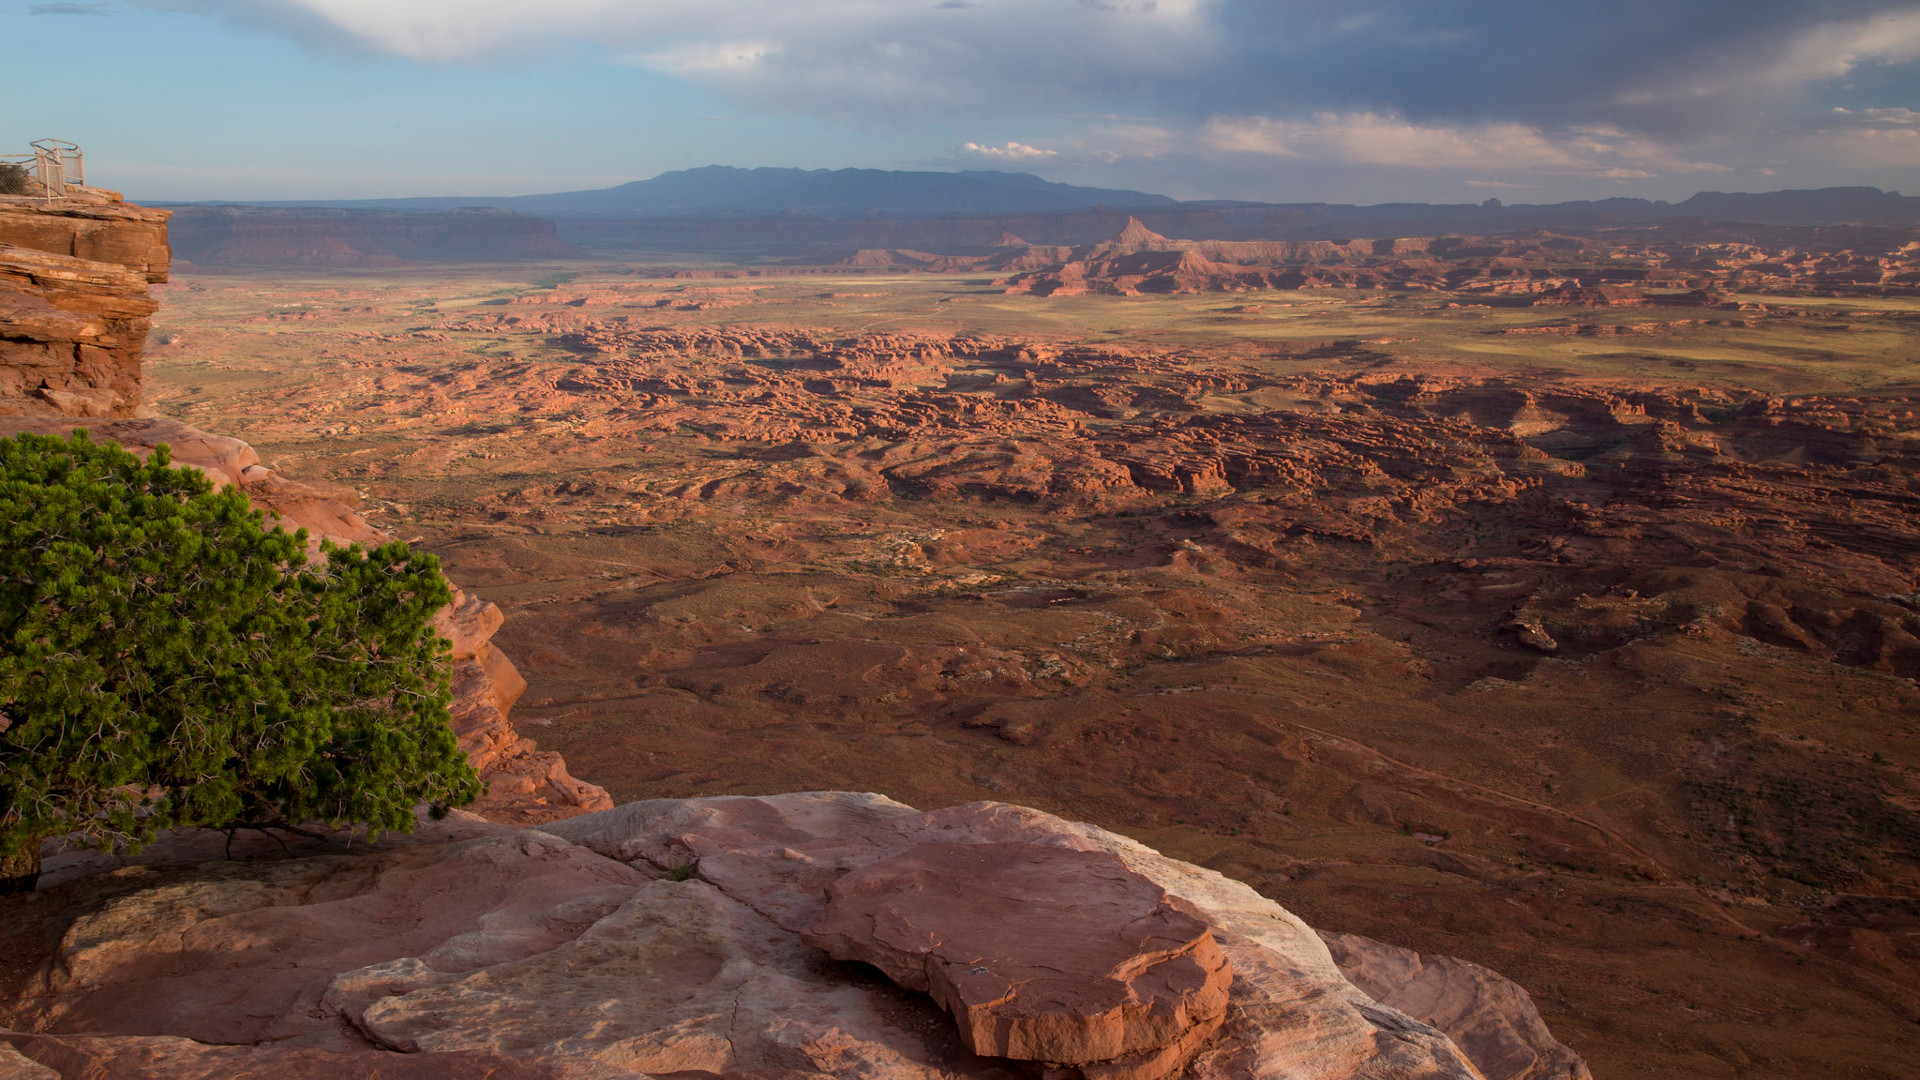 Keep our national monuments intact